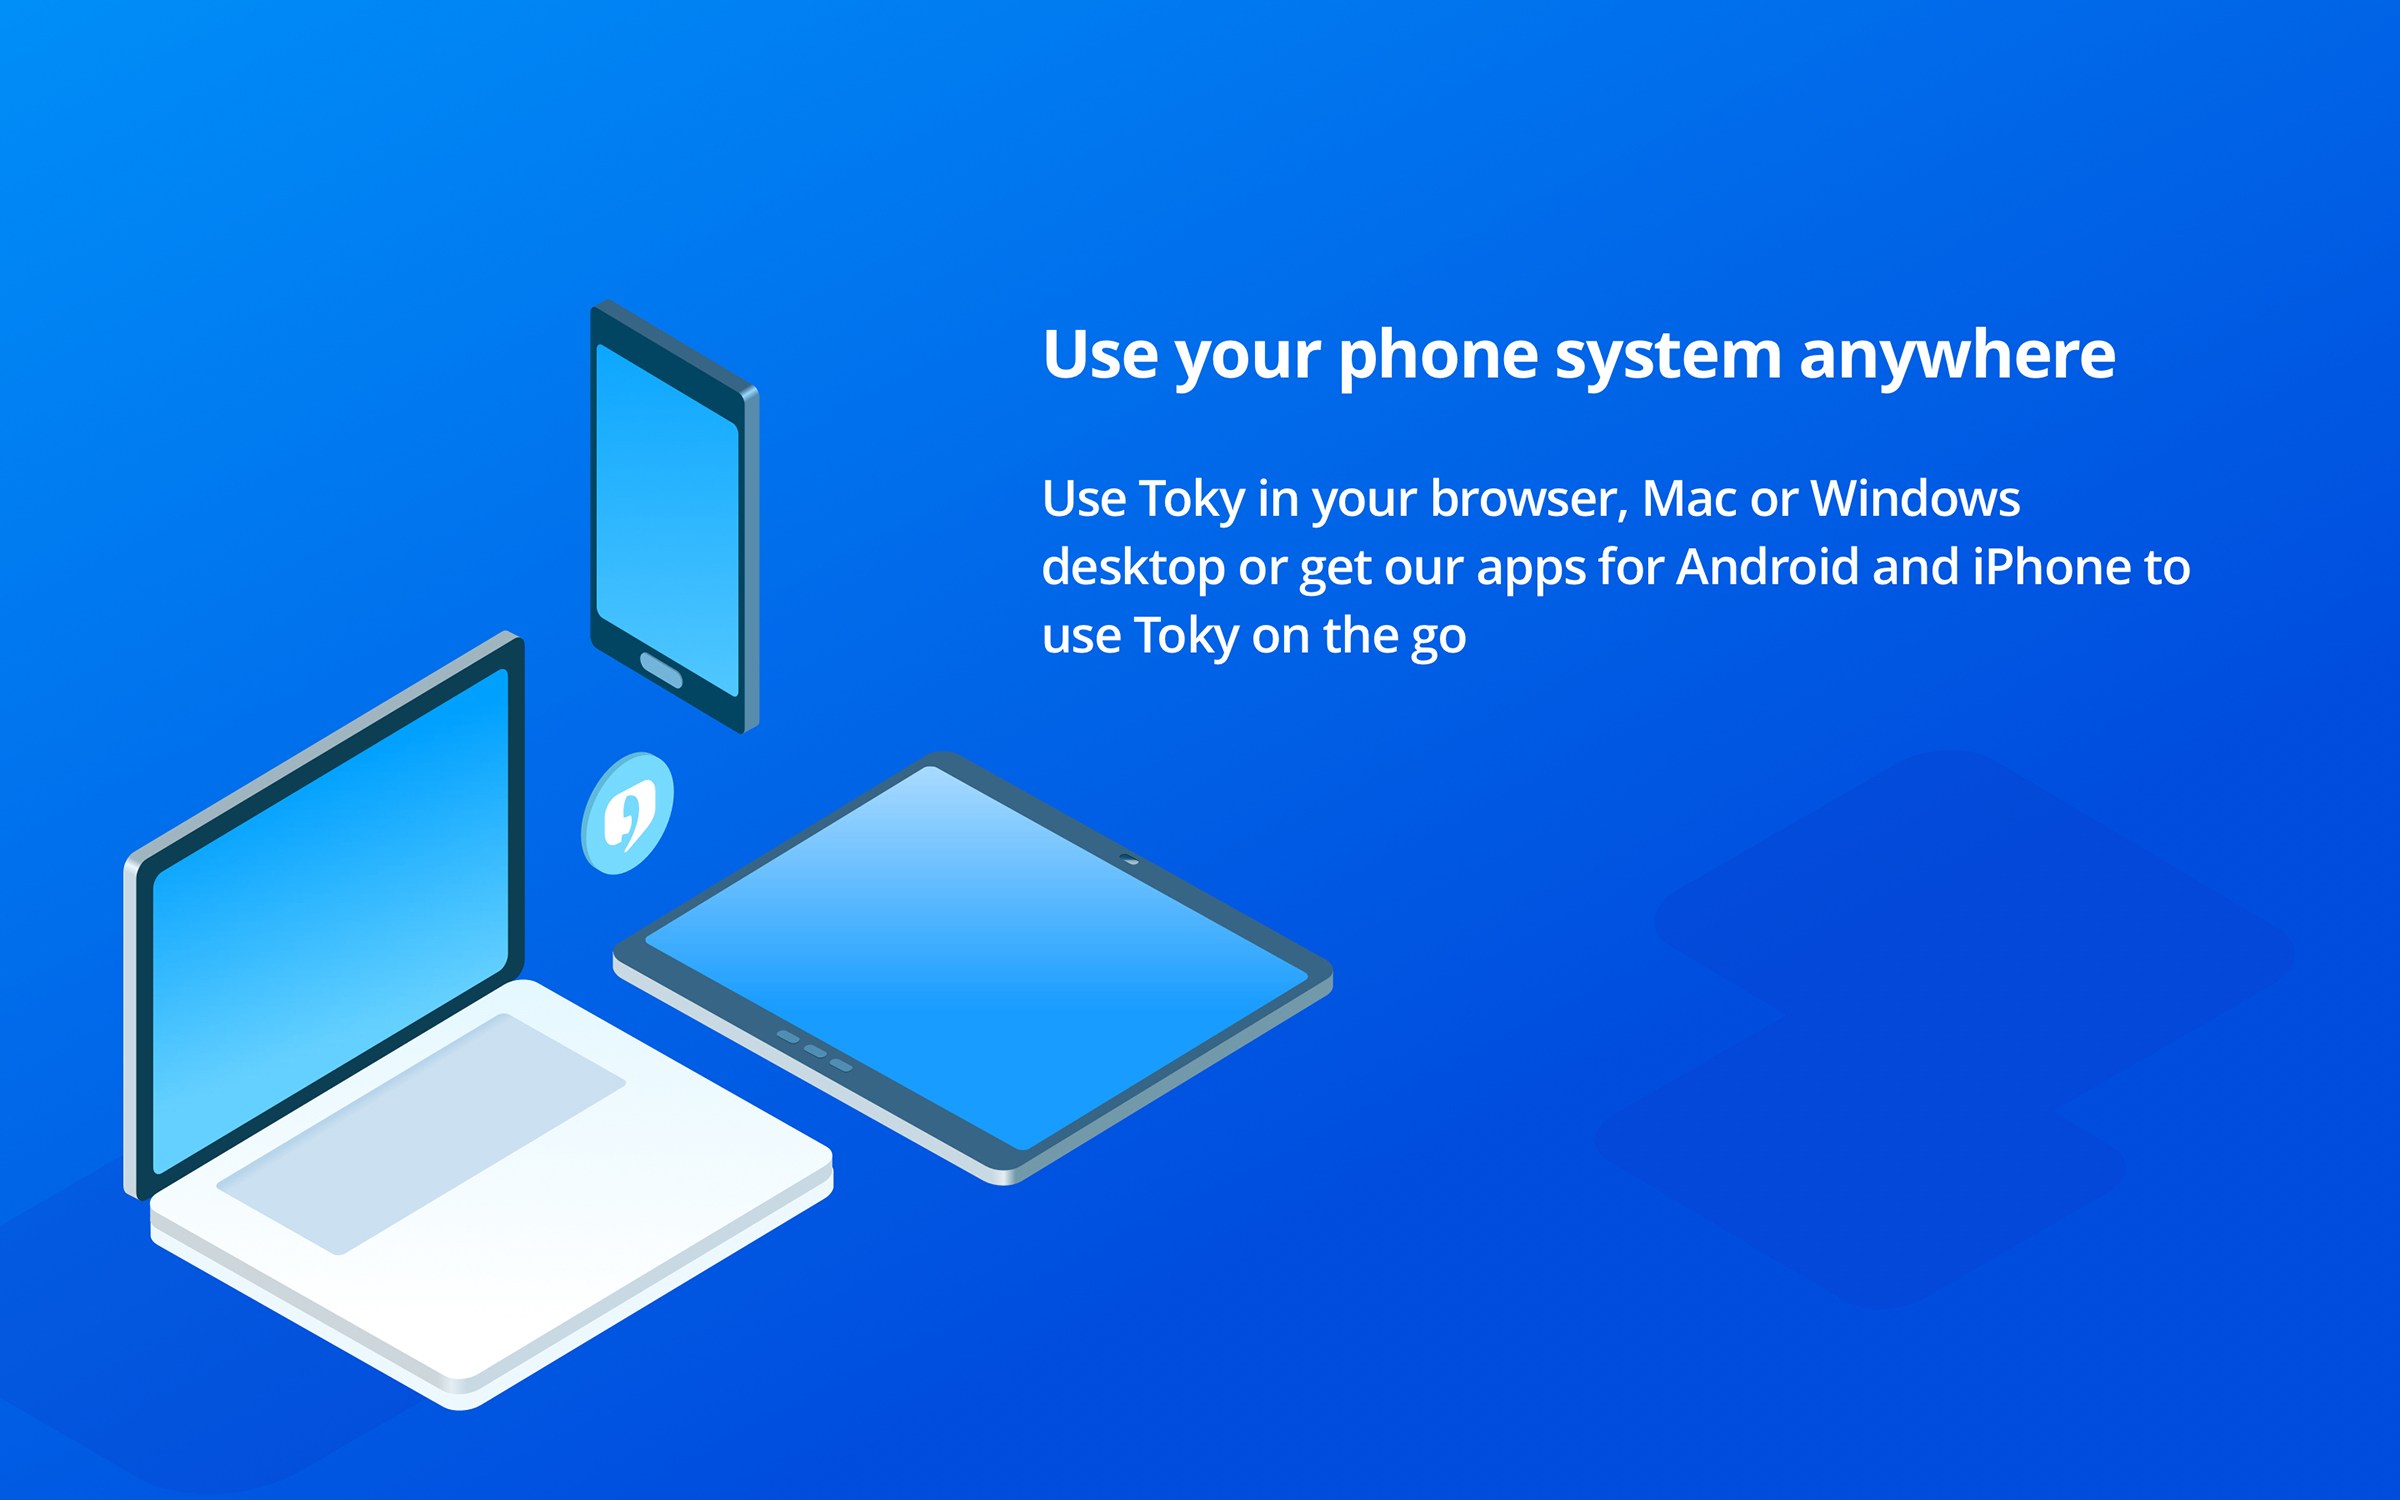 Toky Demo - Use your phone system anywhere